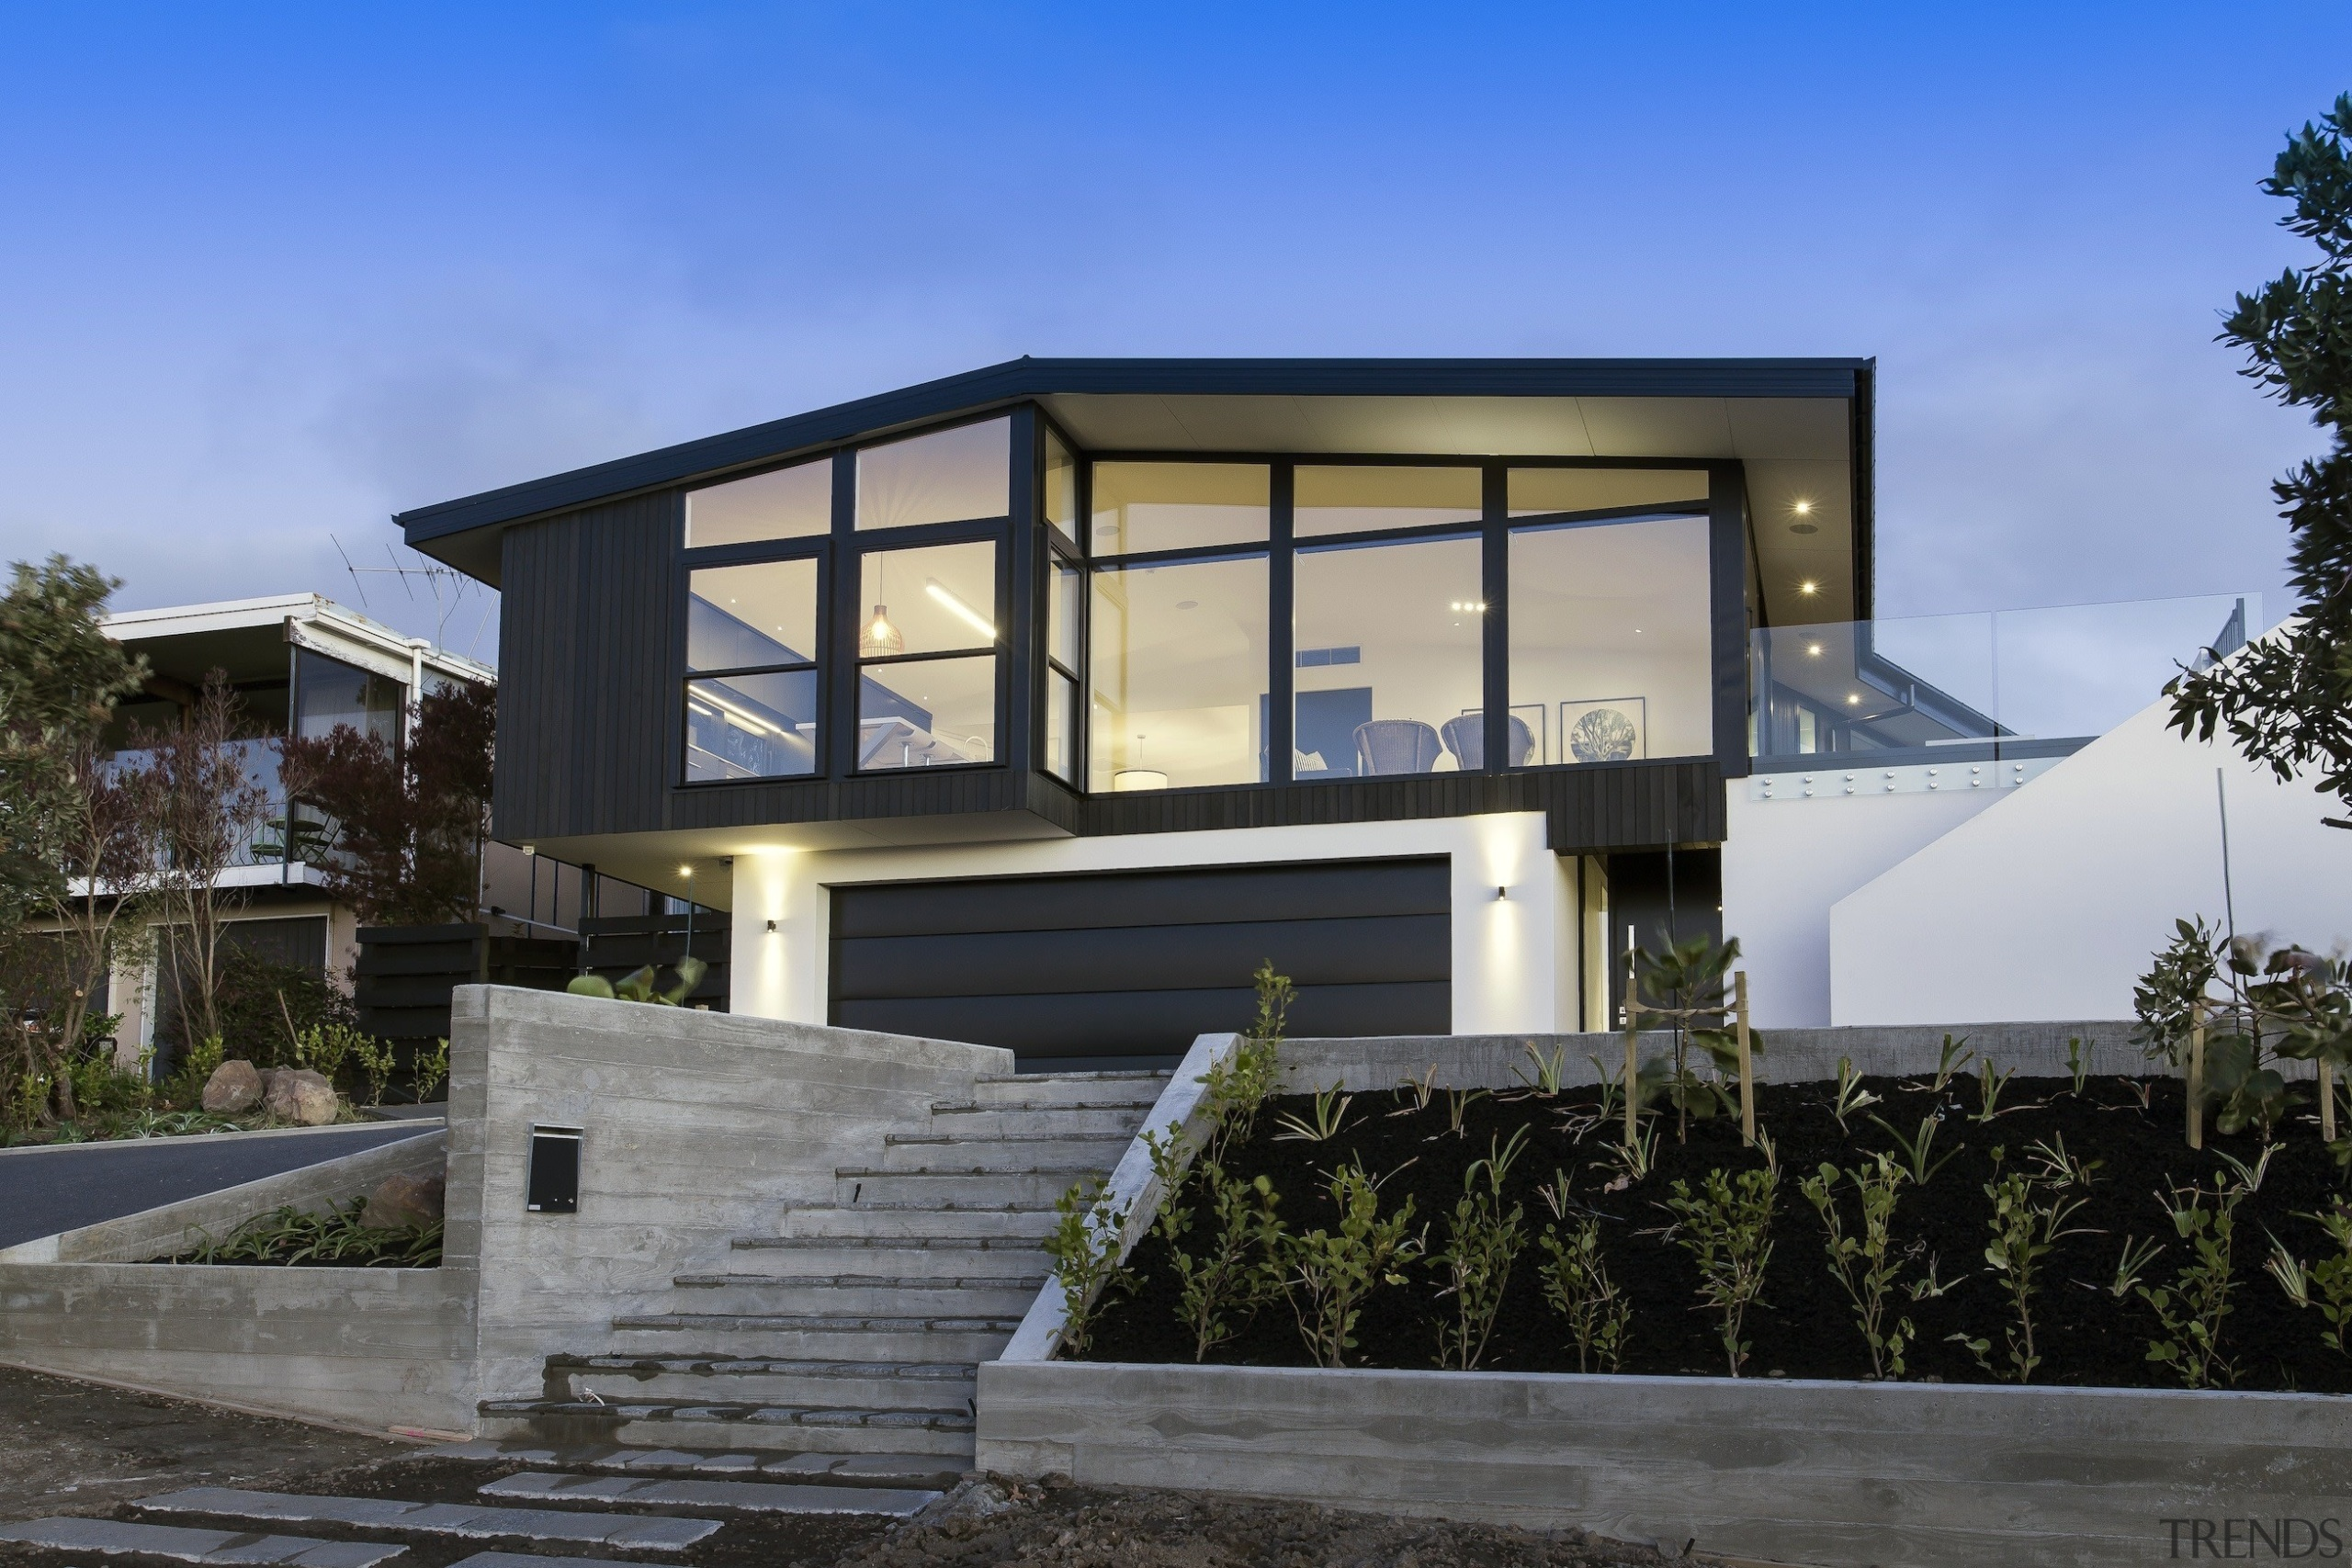 Highly Commended – 2016 Tida New Zealand Designer architecture, building, cottage, elevation, facade, home, house, property, real estate, residential area, villa, window, black, gray, blue